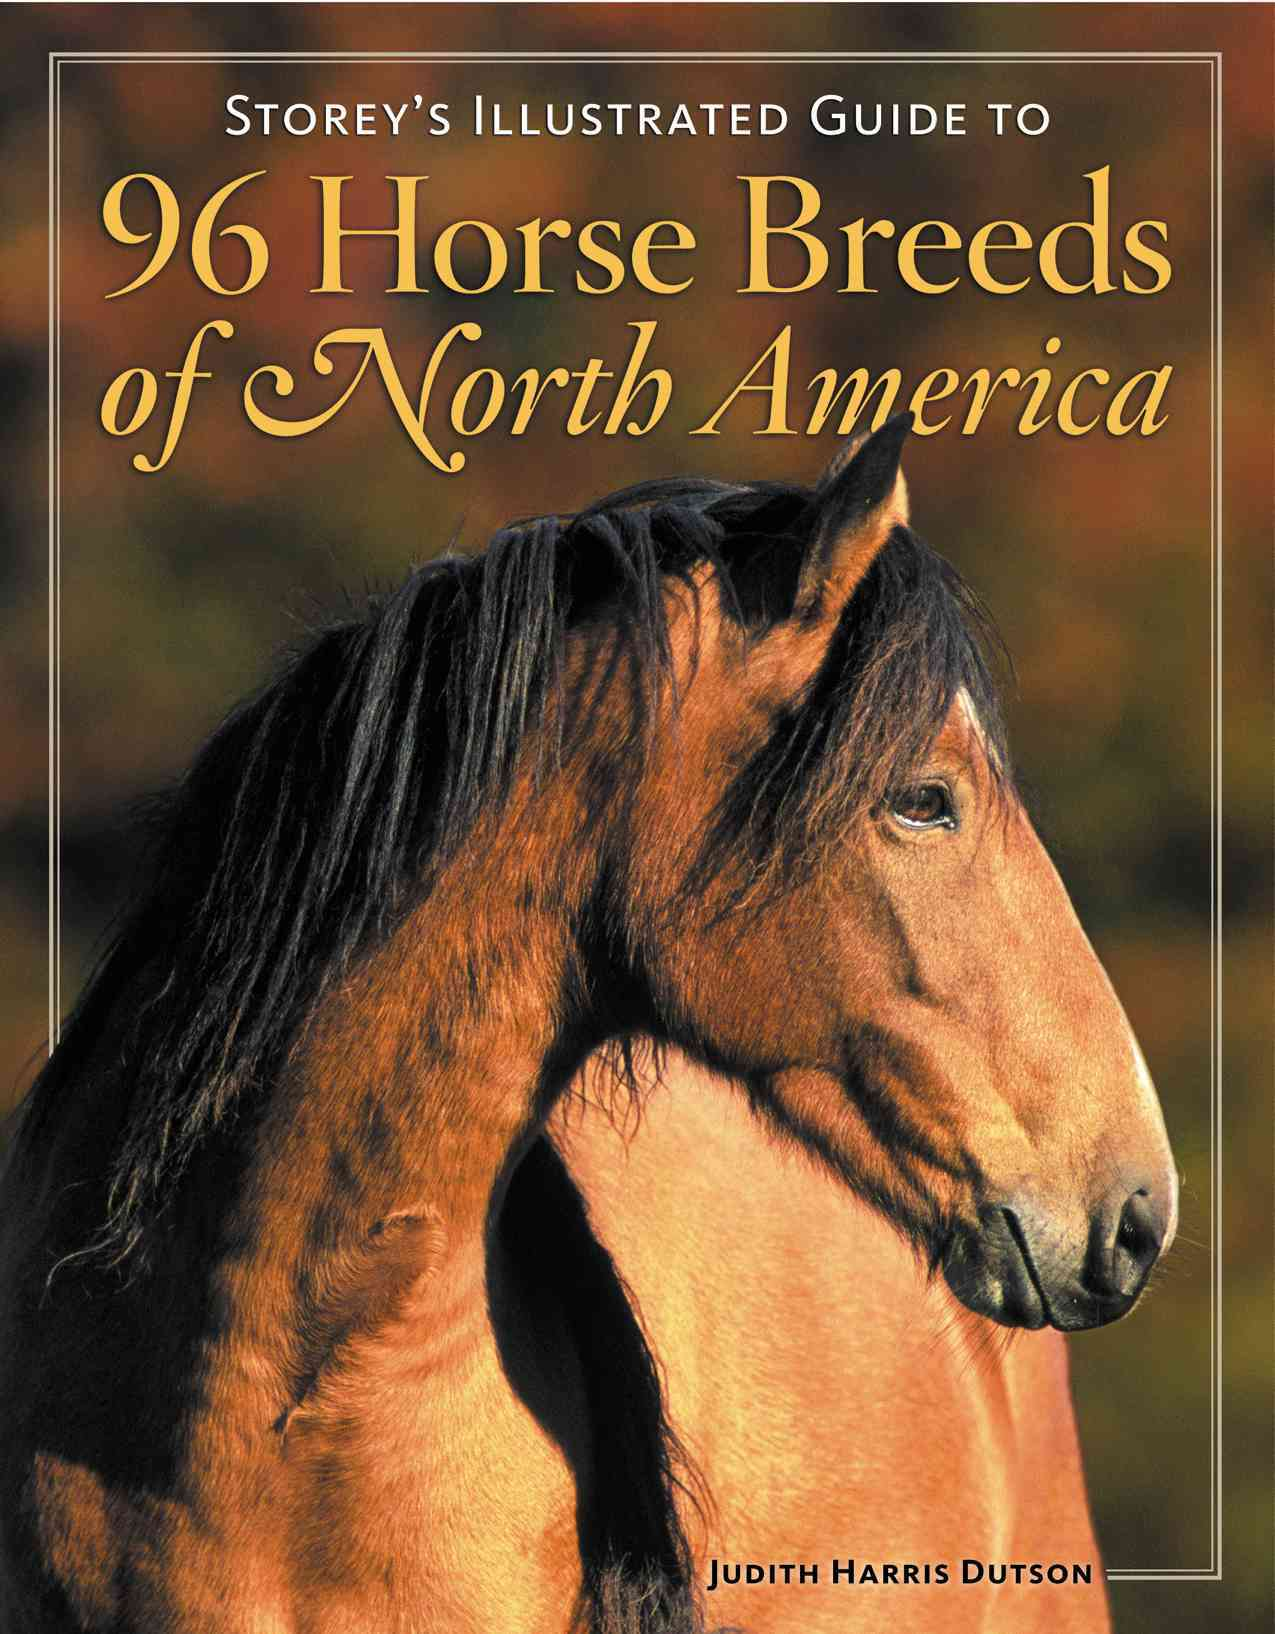 Storey's Illustrated Guide to 96 Horse Breeds of North America (Paperback)